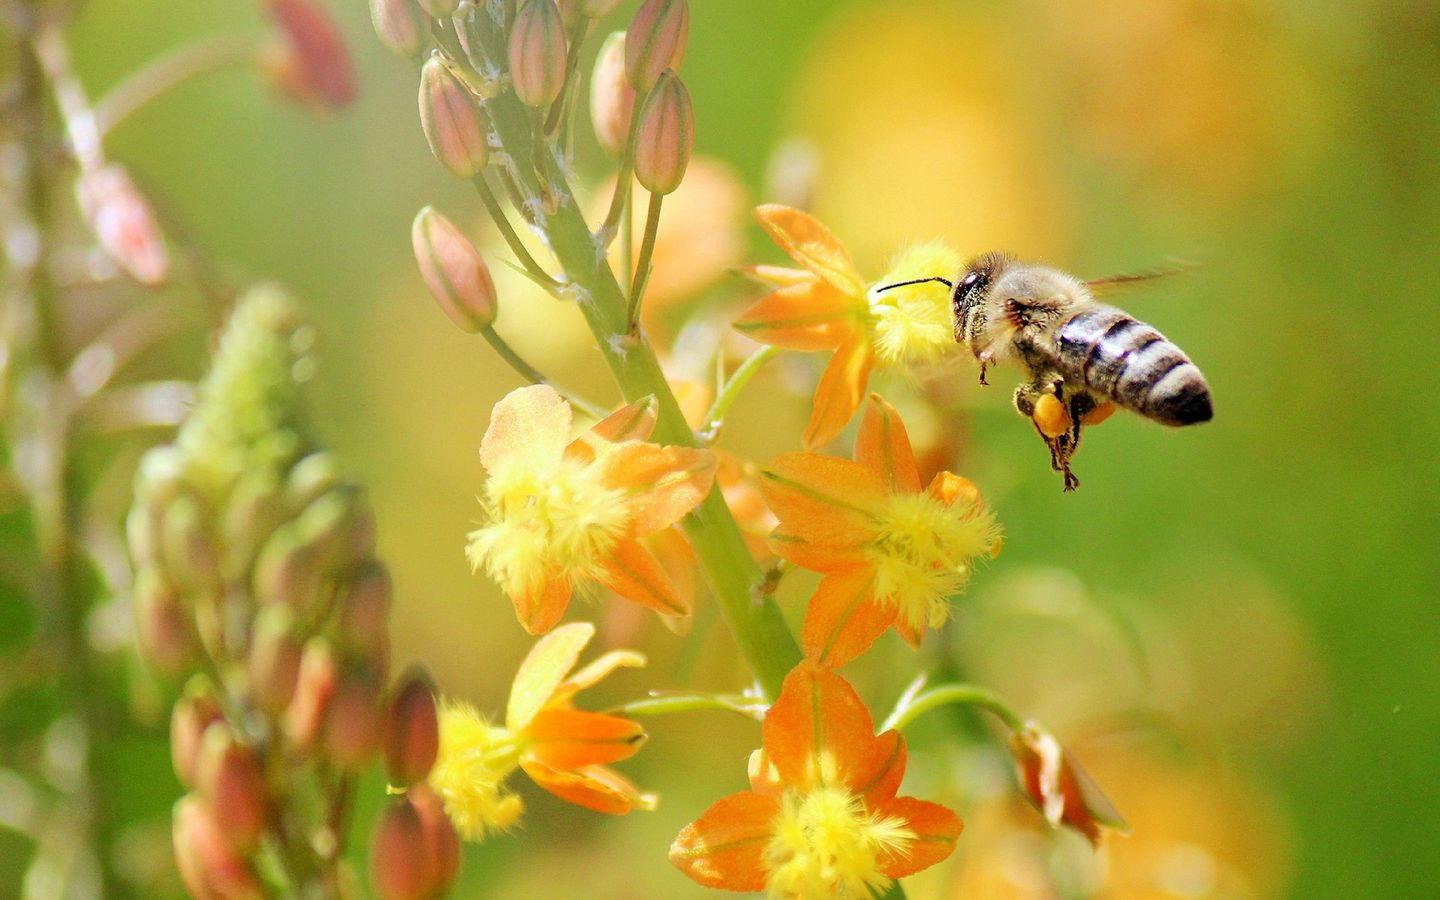 1440x900 Wallpaper bee, flying, grass, plant